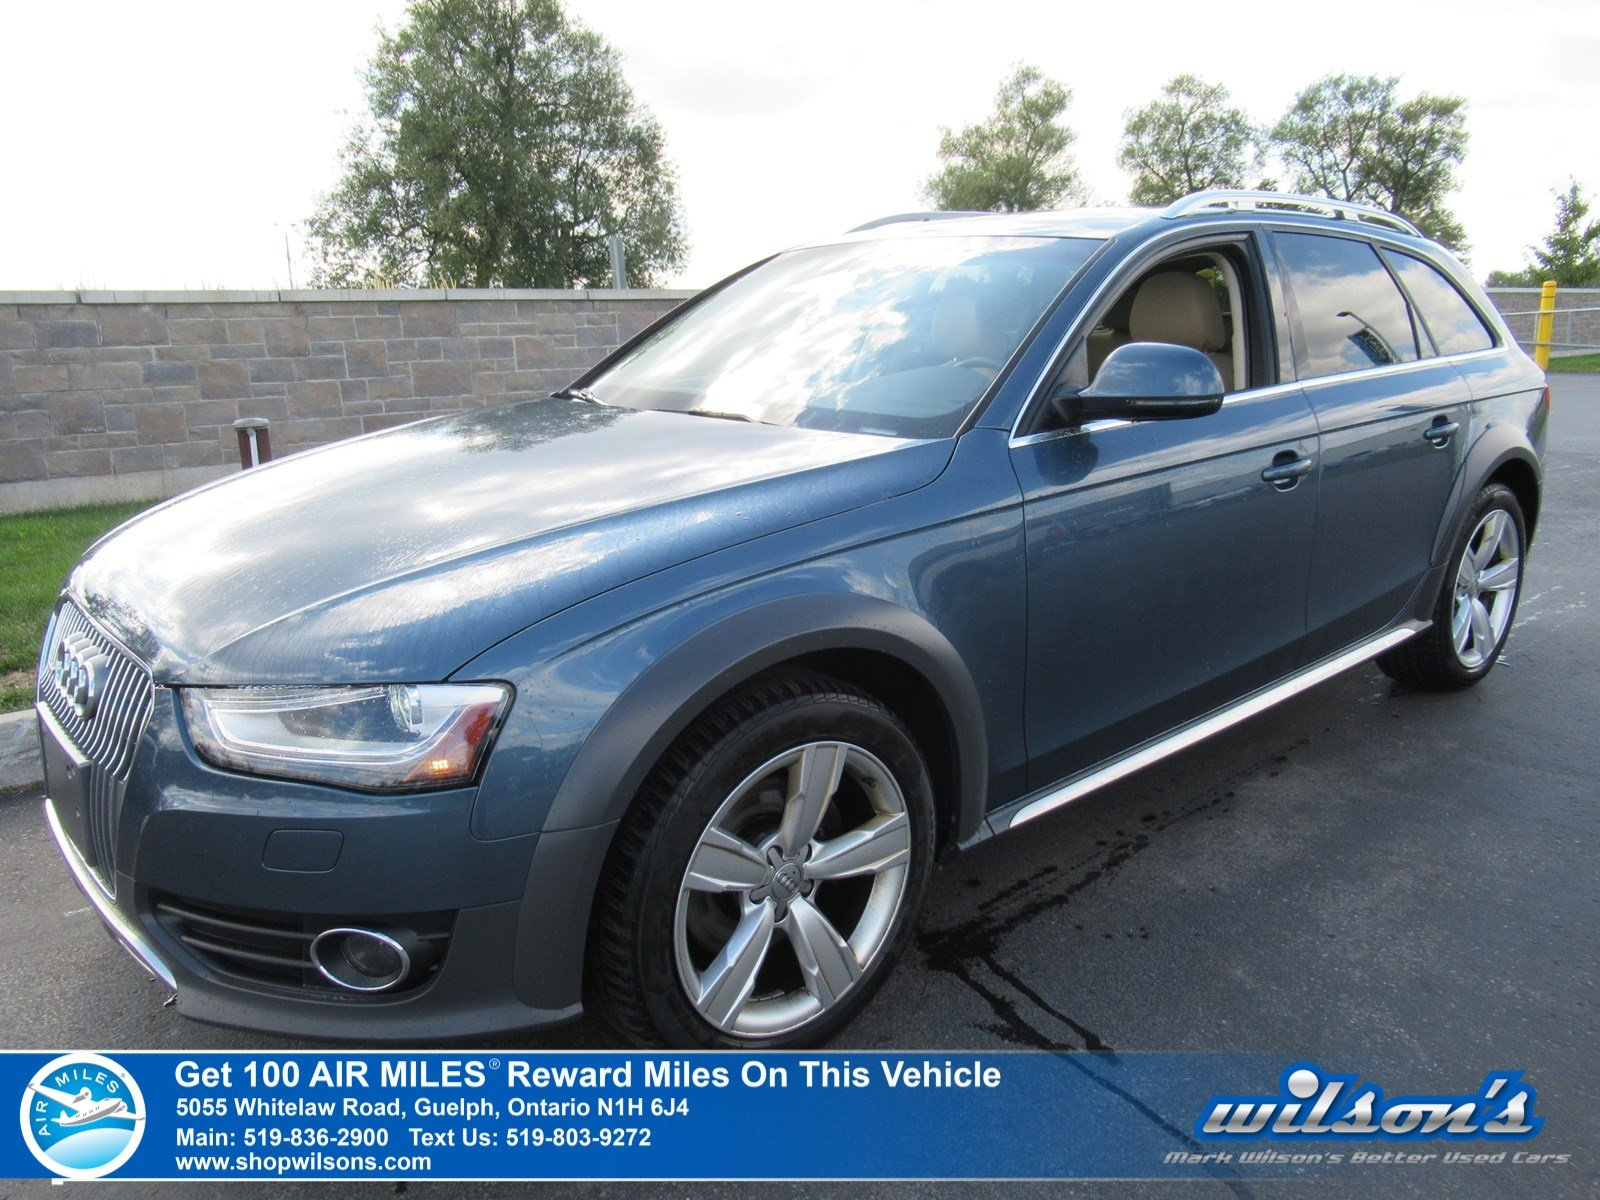 Certified Pre-Owned 2016 Audi A4 allroad Progressiv Quattro - One Owner! Leather, Sunroof, Navigation, Reverse Camera, Heated Seats and more!